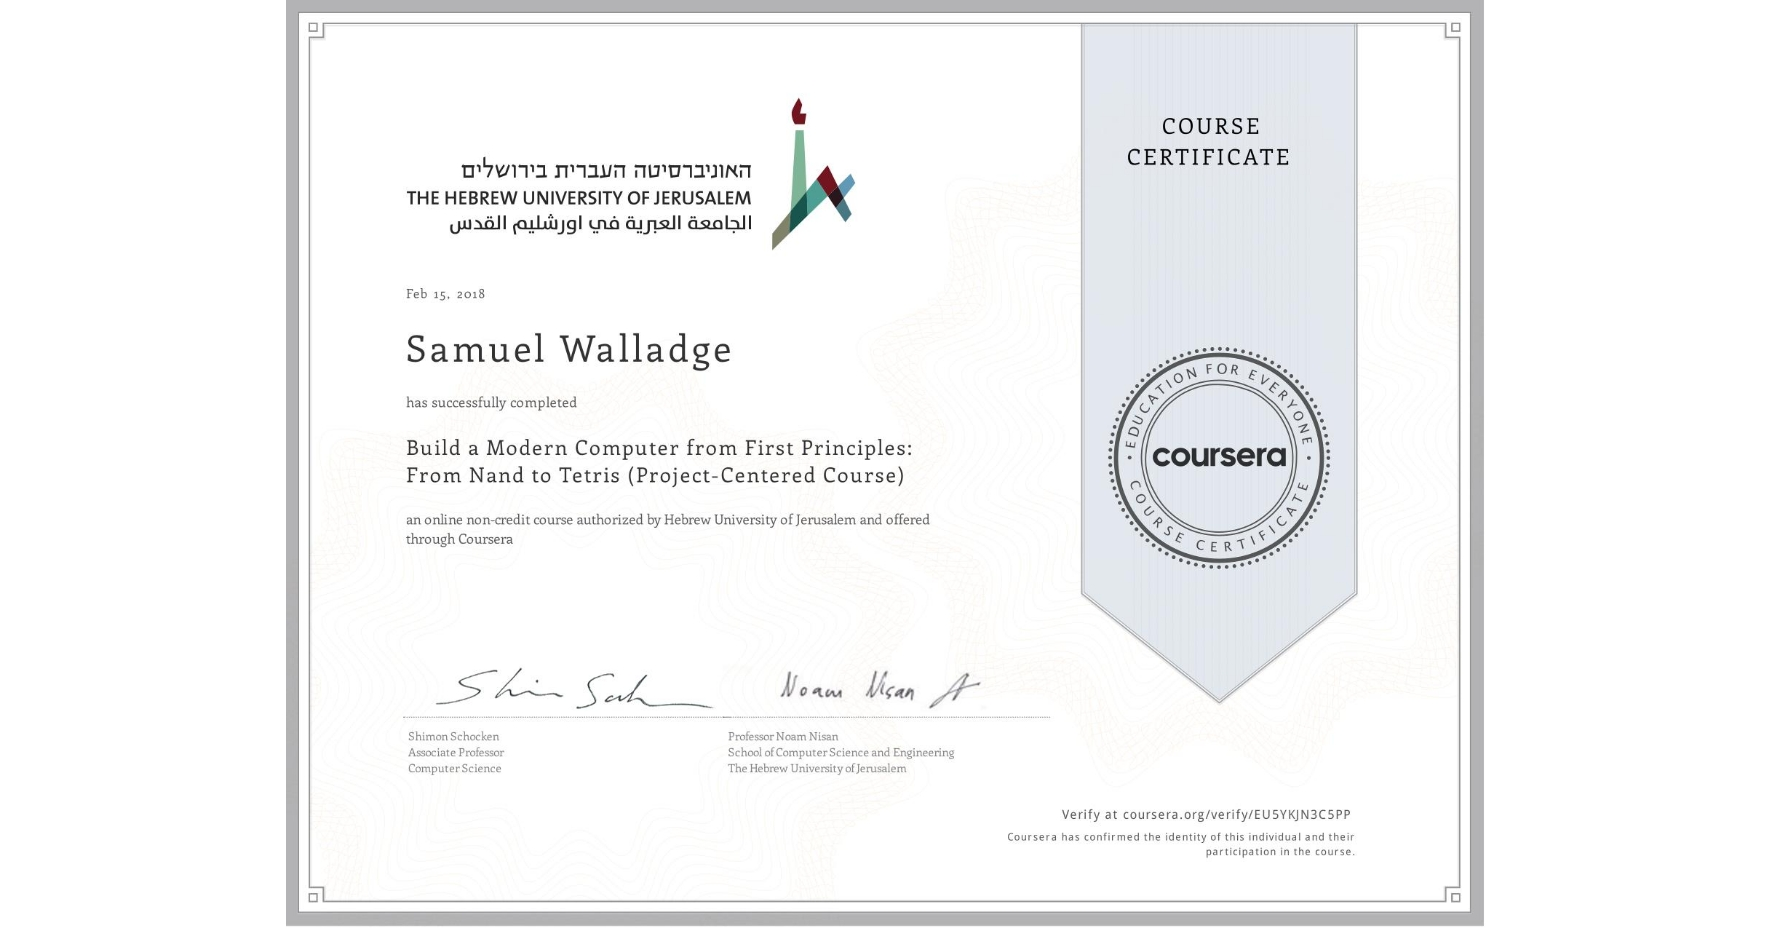 View certificate for Samuel Walladge, Build a Modern Computer from First Principles: From Nand to Tetris (Project-Centered Course), an online non-credit course authorized by Hebrew University of Jerusalem and offered through Coursera